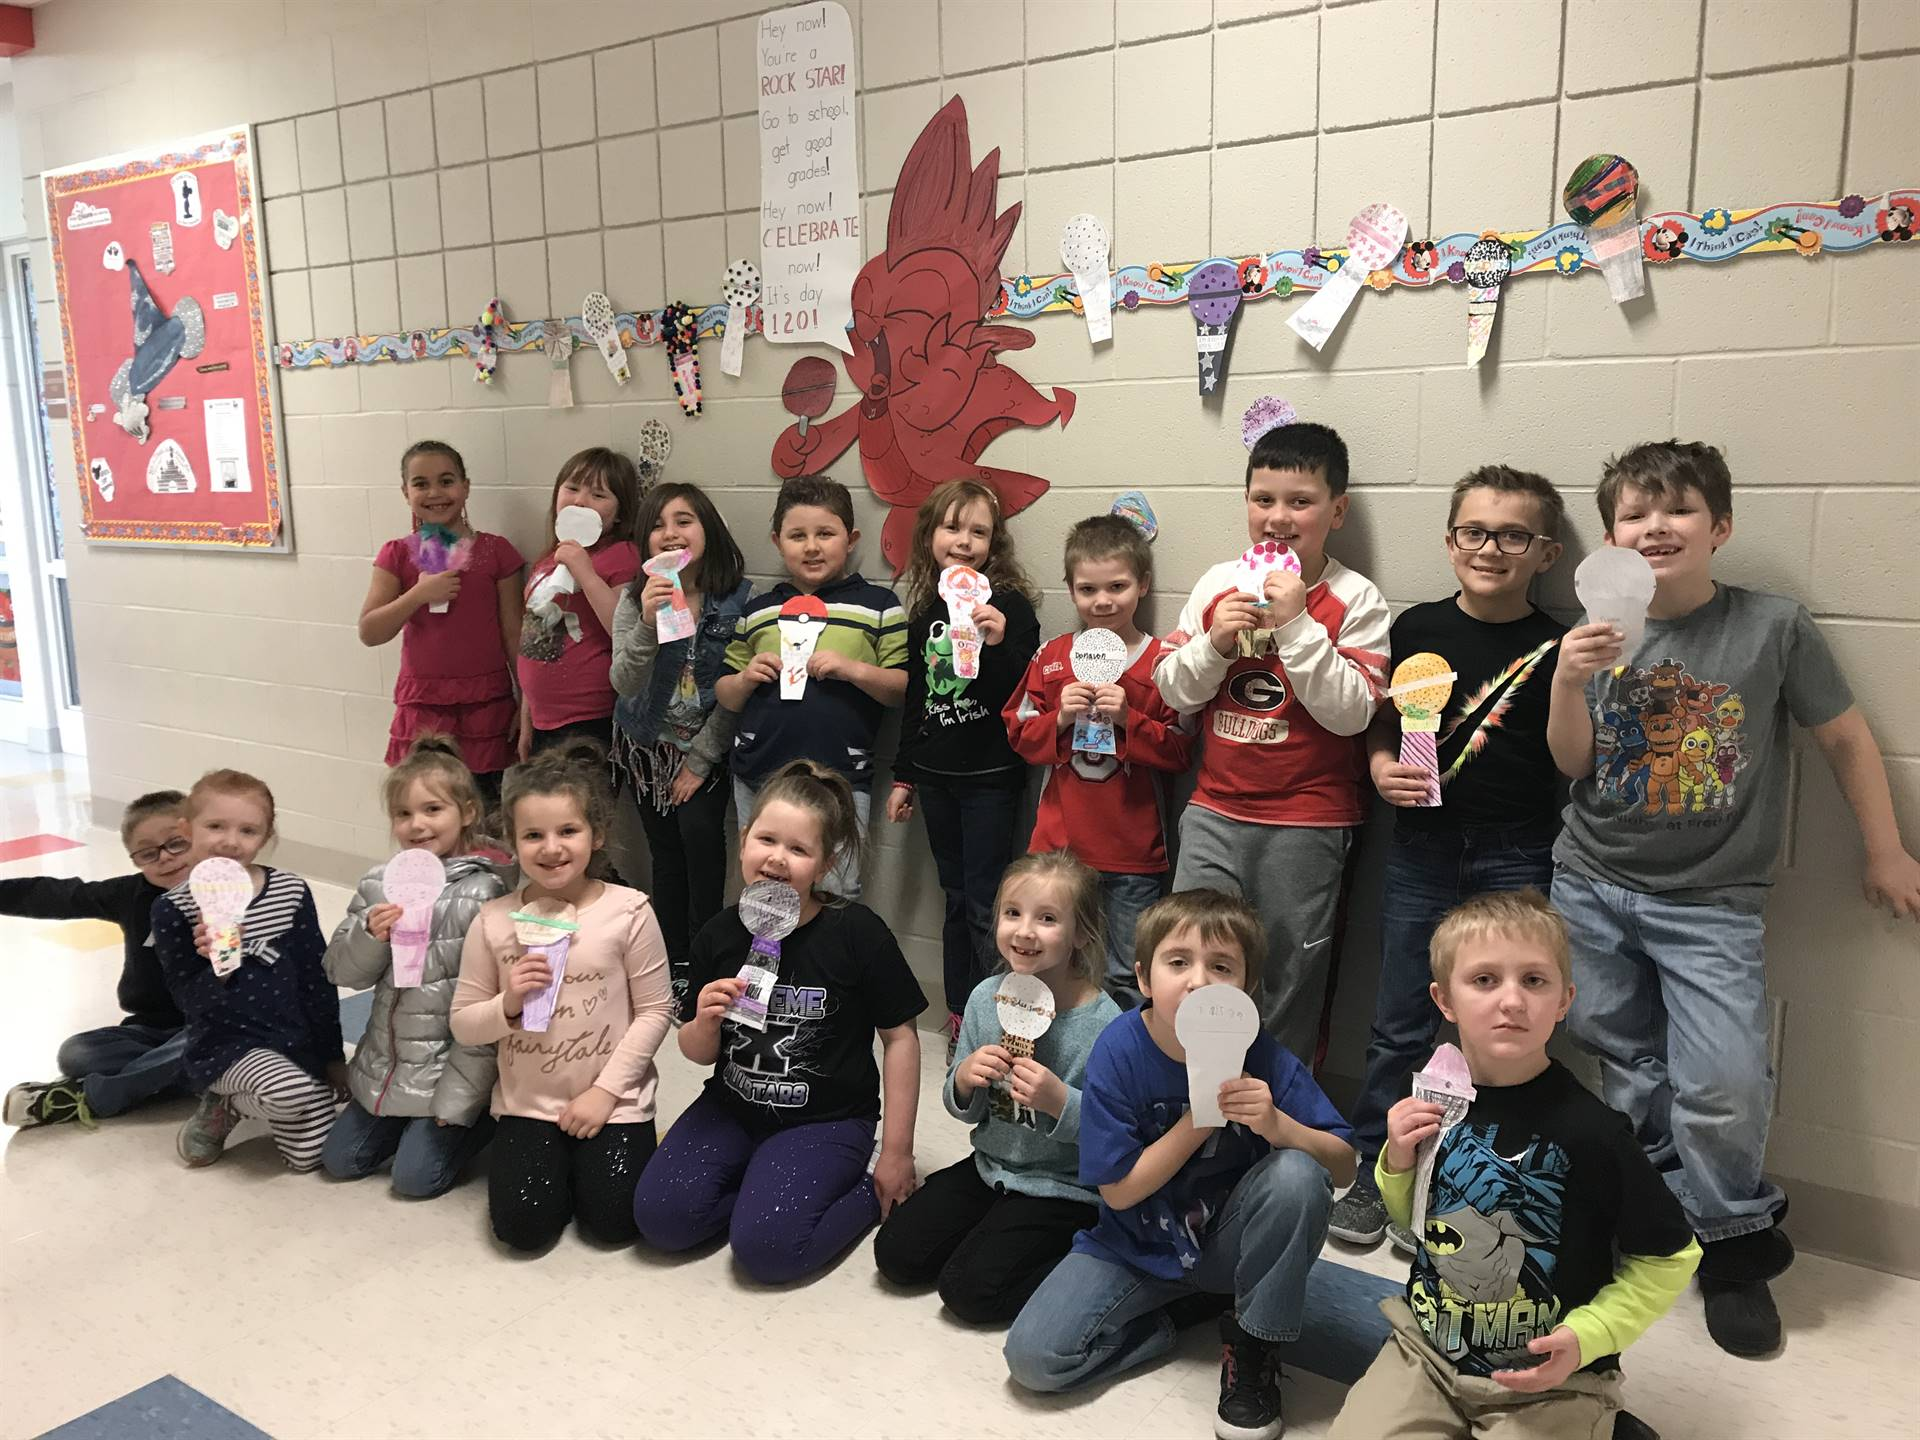 Mrs. Lehman's class celebrating the 120th day of school